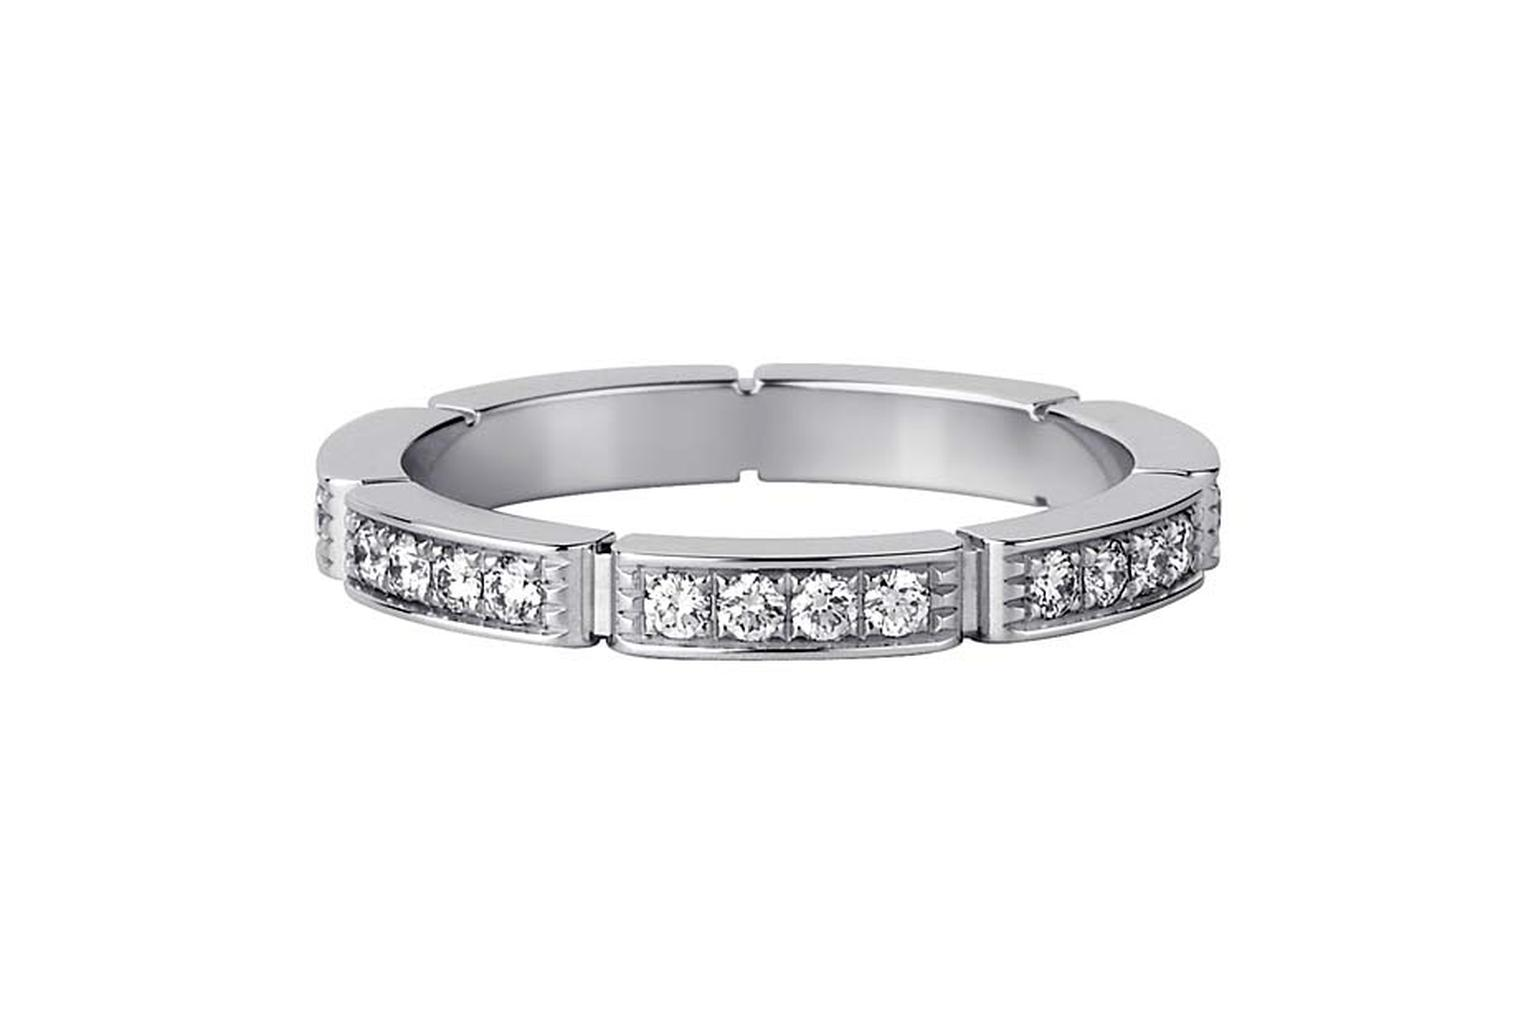 Cartier Maillon Panthe`re de Cartier platinum and diamond wedding ring.